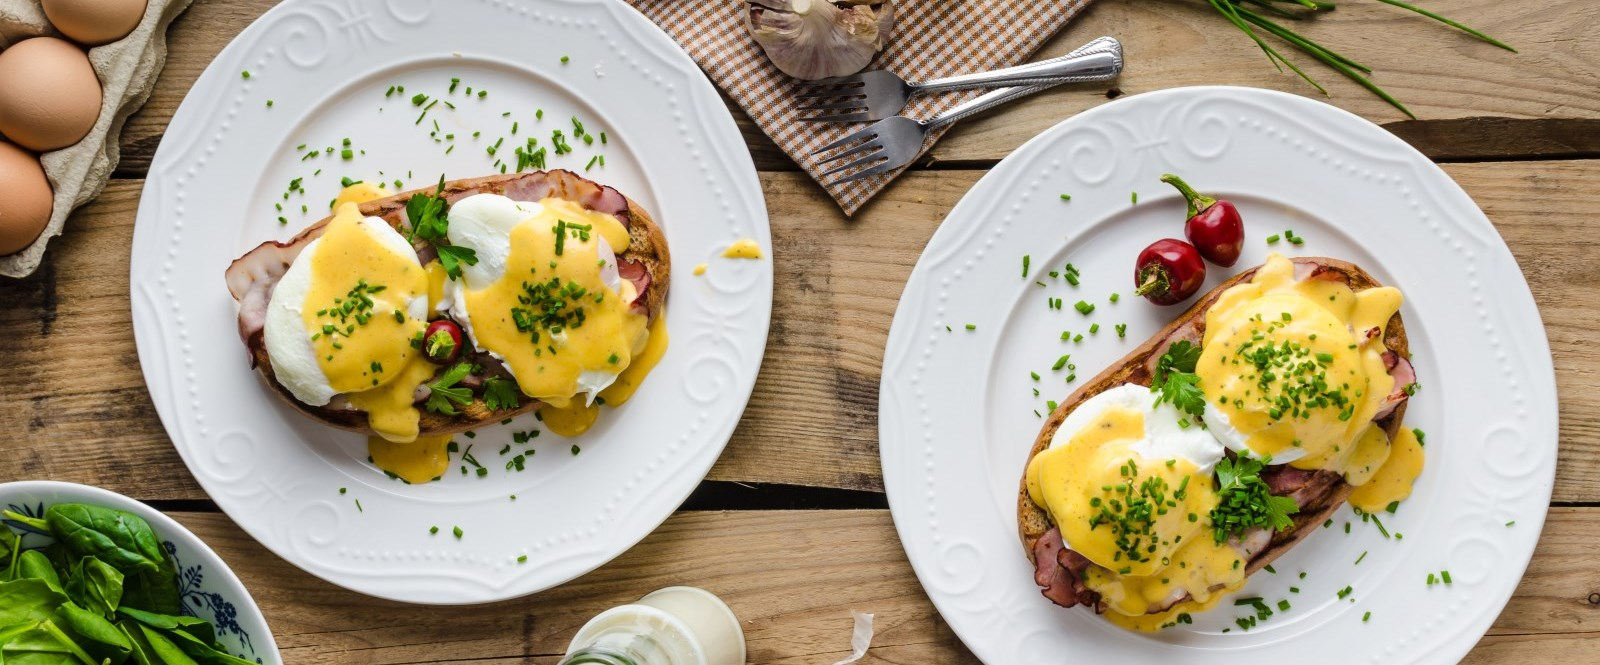 two plates of eggs benedict